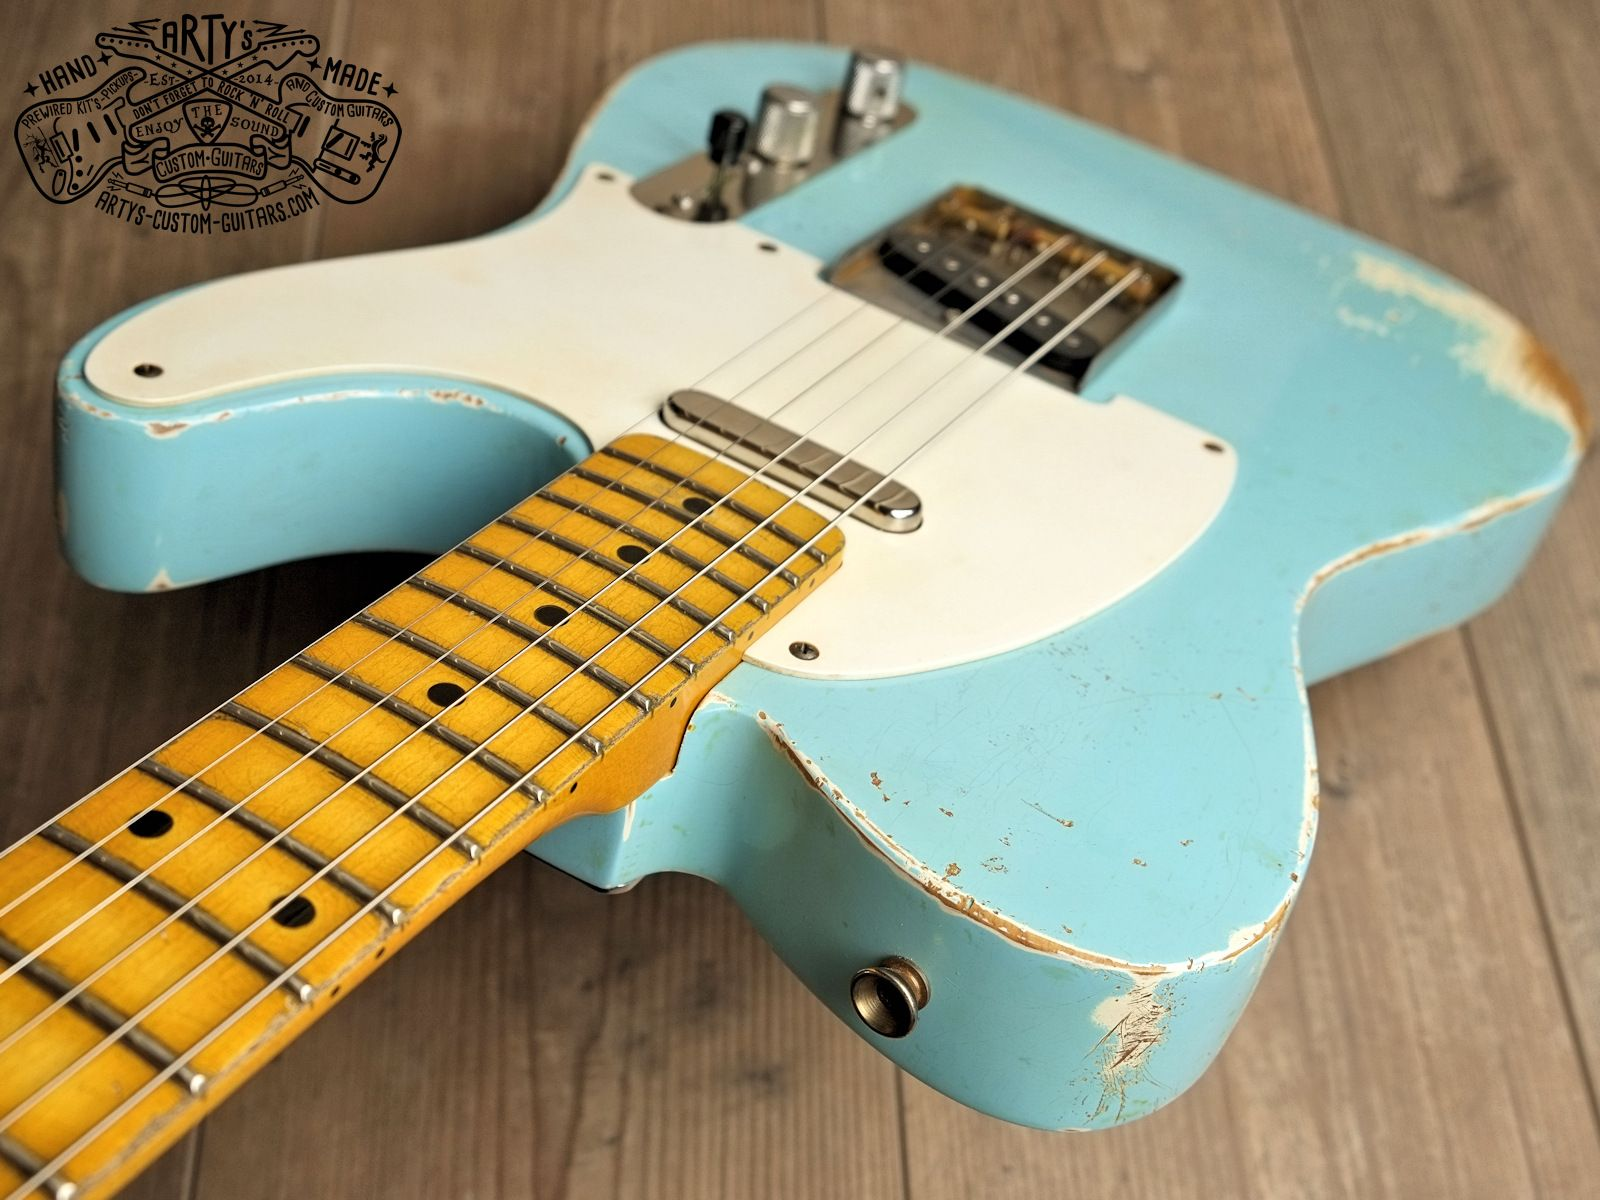 Sonic Blue relic roadworn Telecaster Warmoth Maple Neck Fender Swamp ...